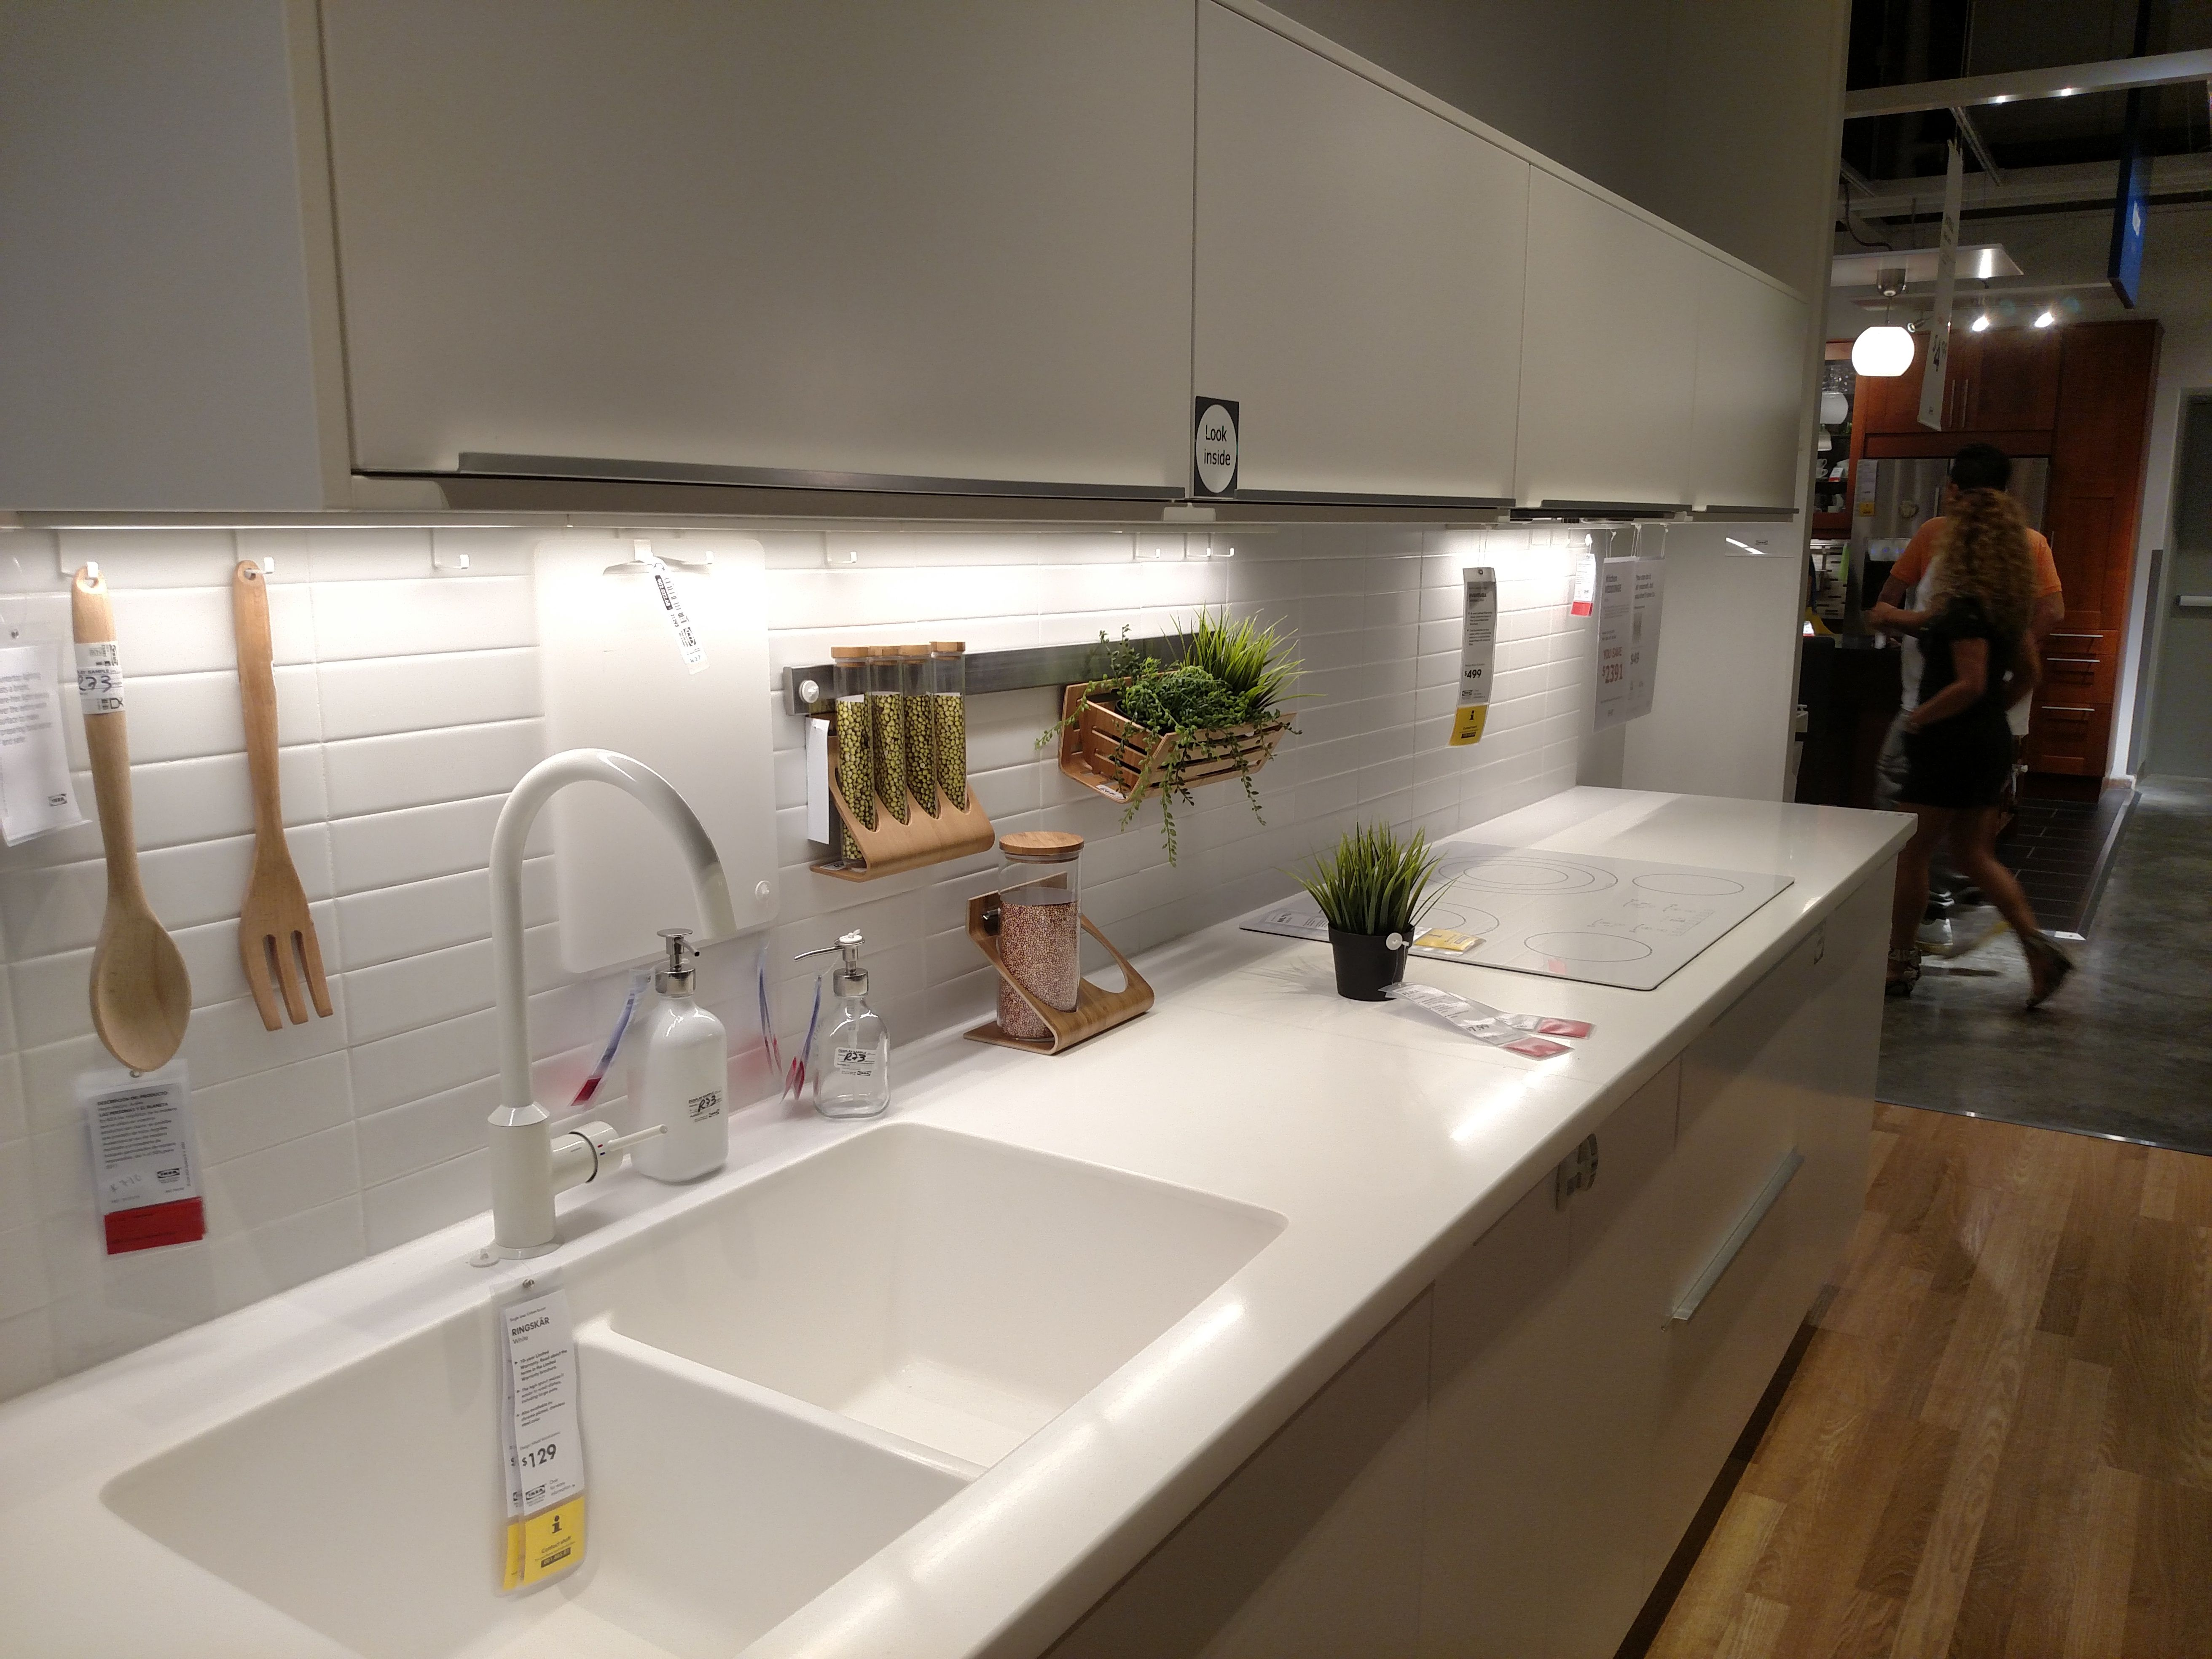 ikea's white personlig acrylic kitchen countertop, integrated sink